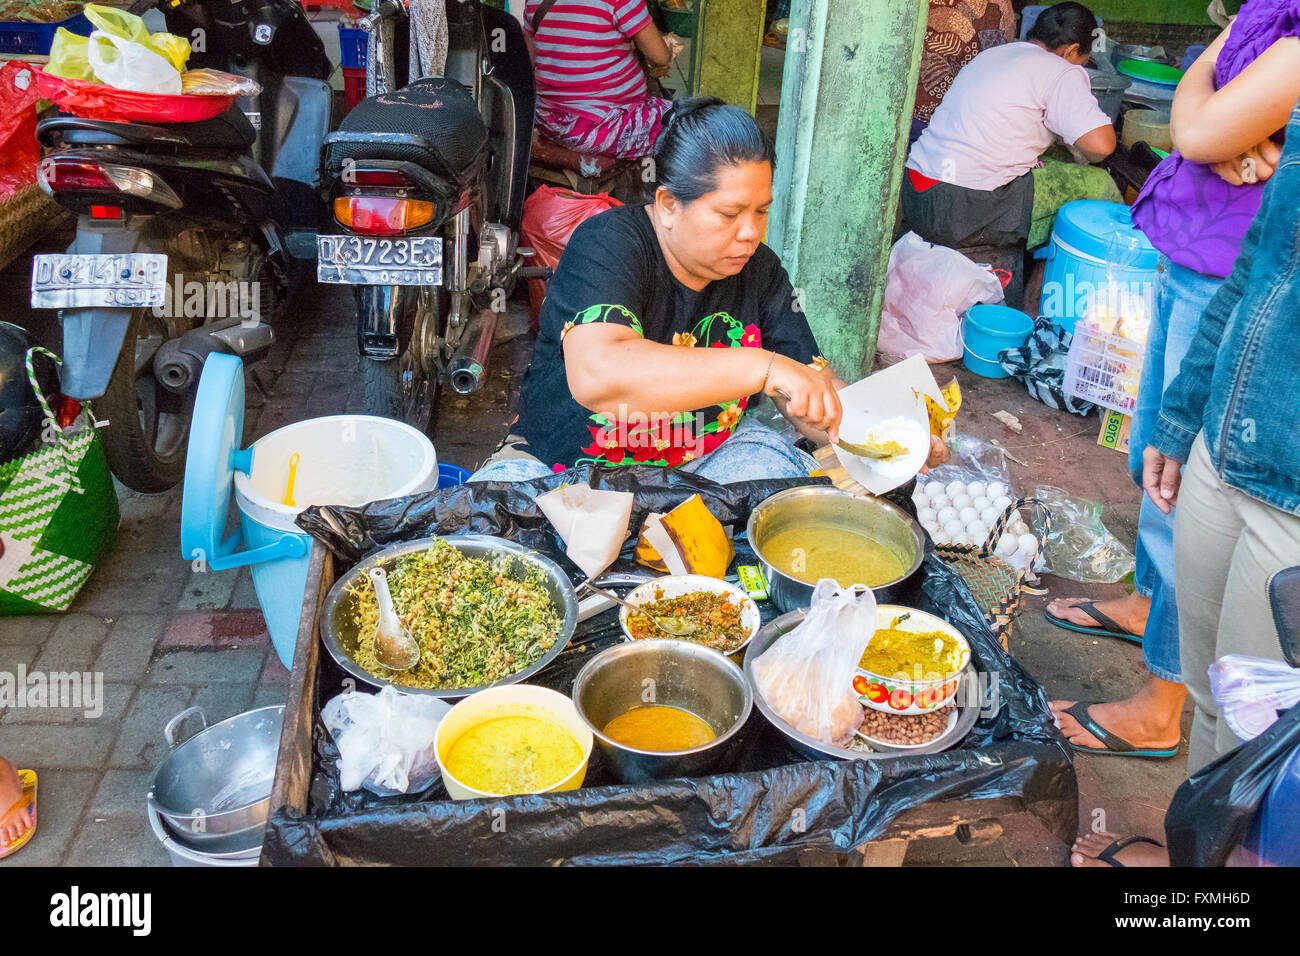 Street Food In Ubud Bali Indonesia Stock Photo 102485445